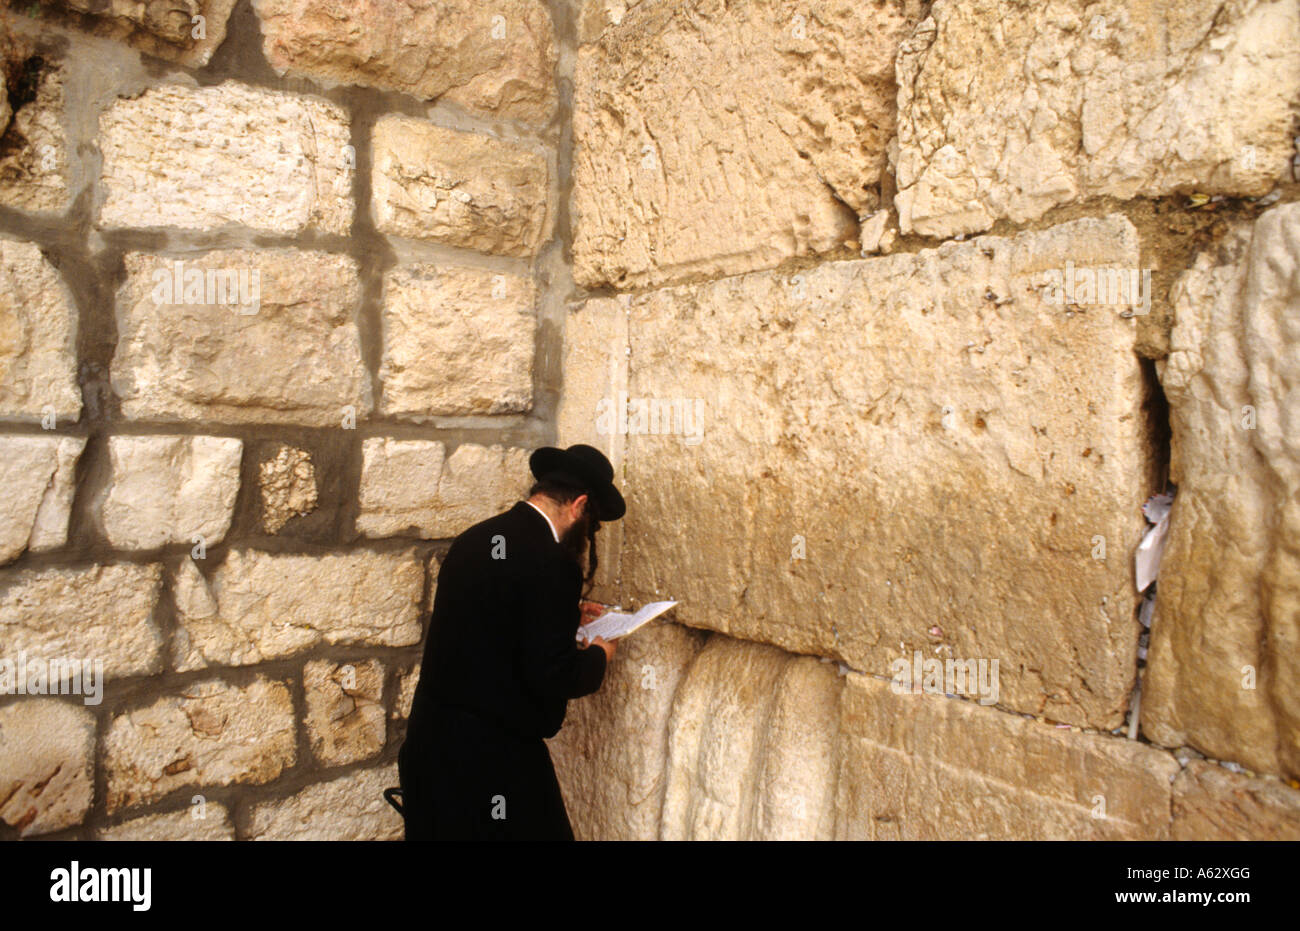 Religious worshipers practicing their religion and chanting and reading at the famous Western Wailing Wall in Jerusalem - Stock Image